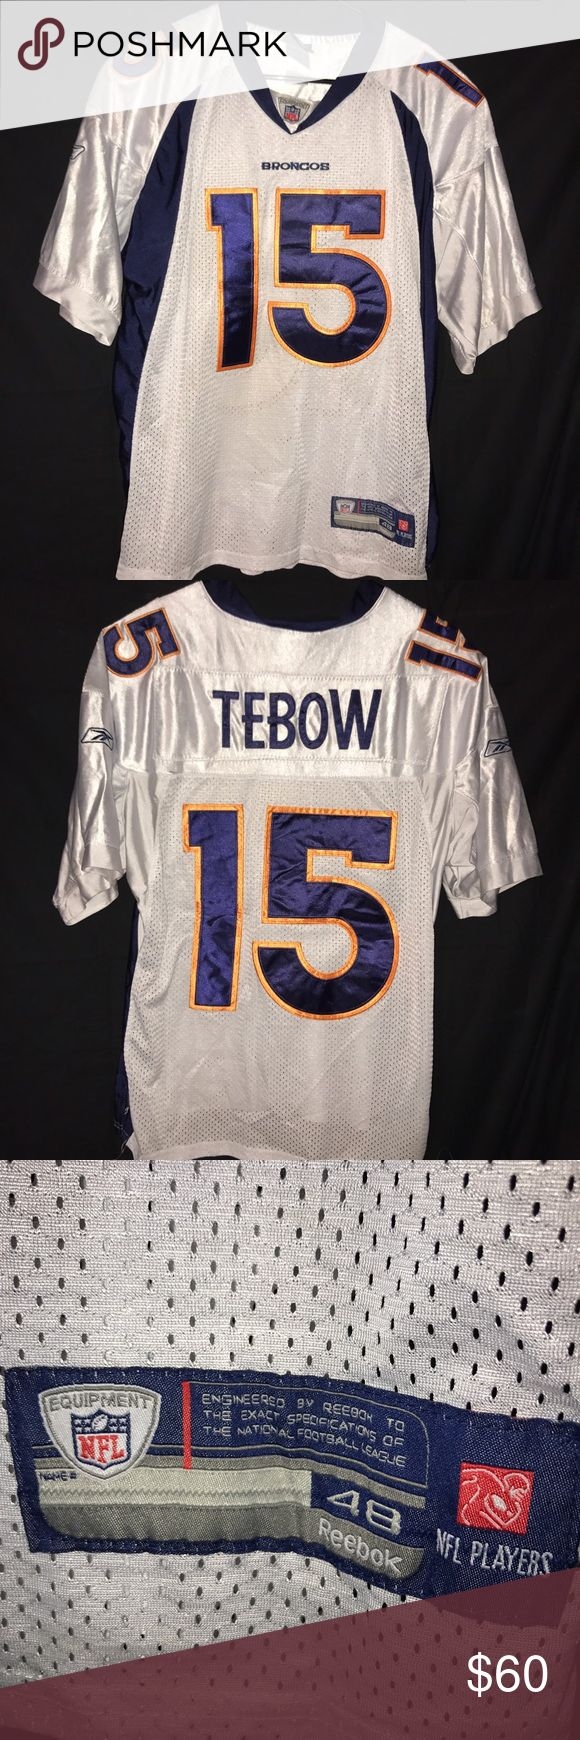 Tim Tebow Denver Broncos Jersey Men's Tim Tebow Denver Broncos Jersey. Size 48 (XL). No conditional issues. Jersey is in really nice condition and is stitched. All letters and numbers are good. Clean! Reebok Shirts